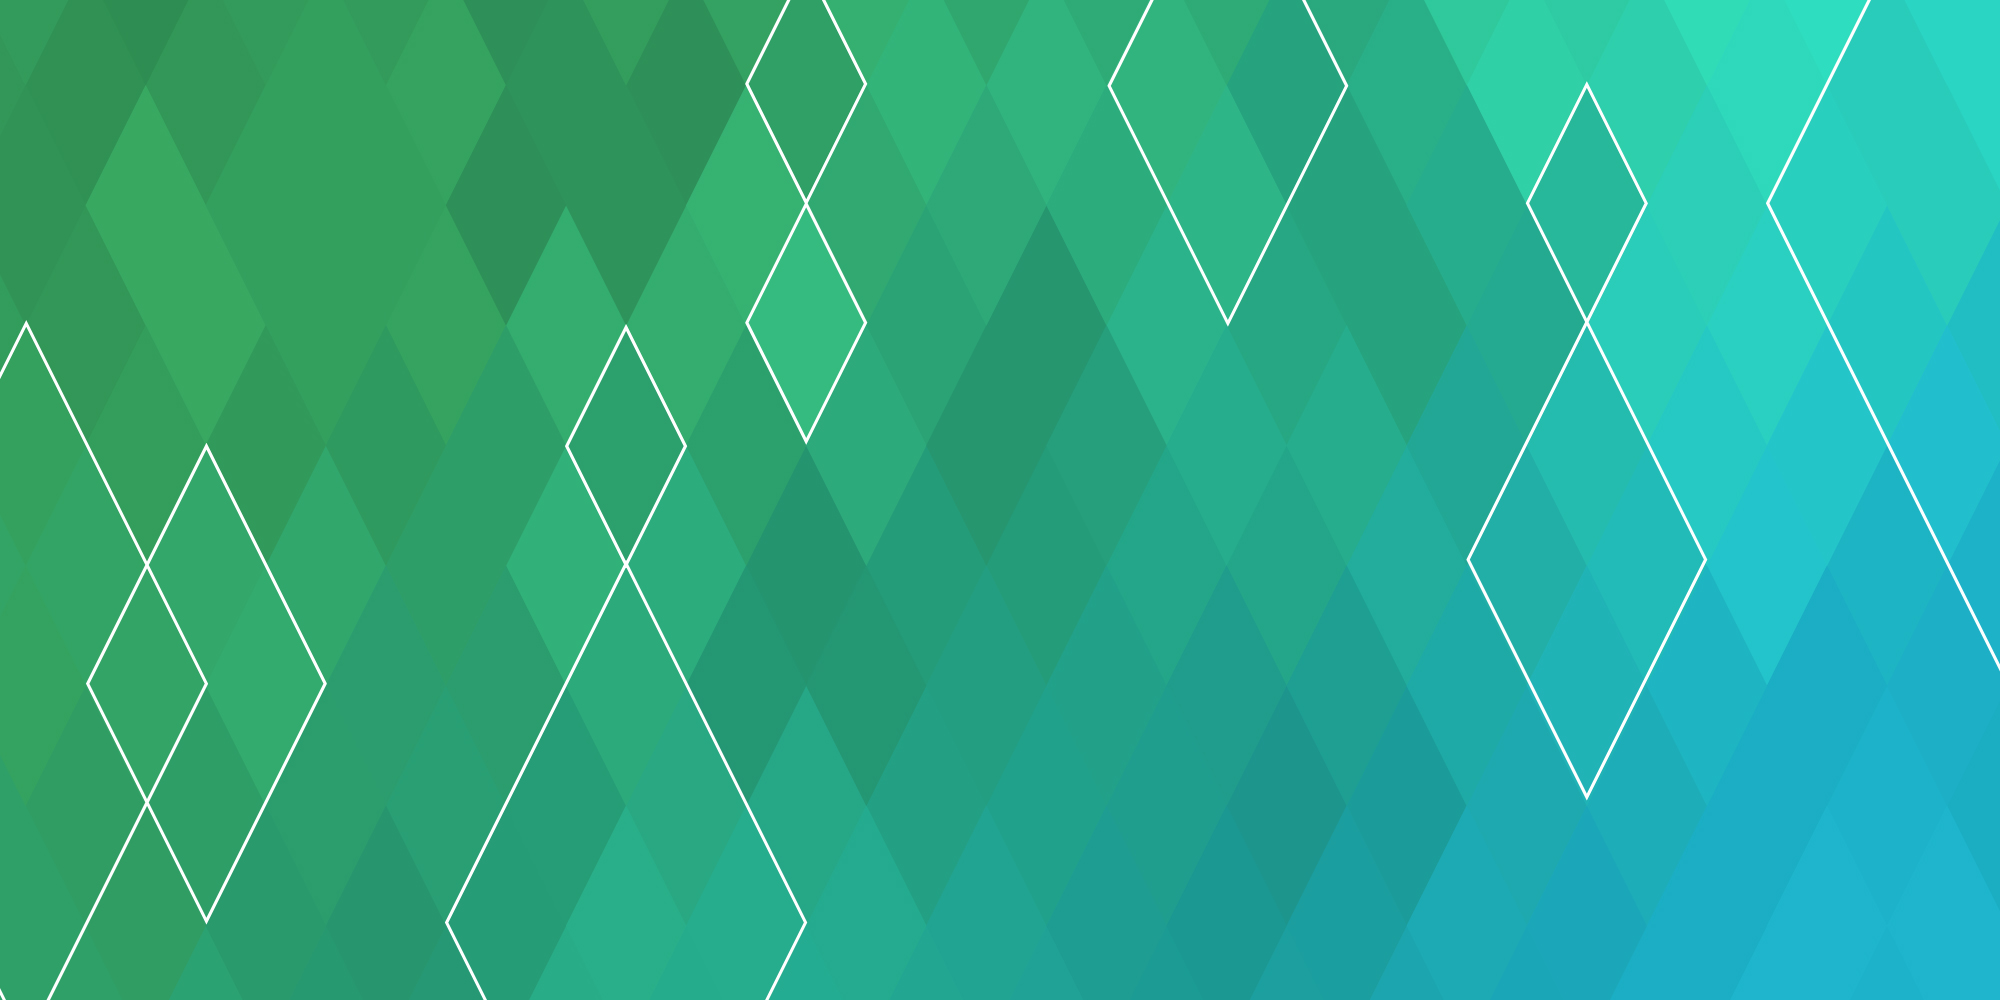 Green, teal, and blue gradient pattern